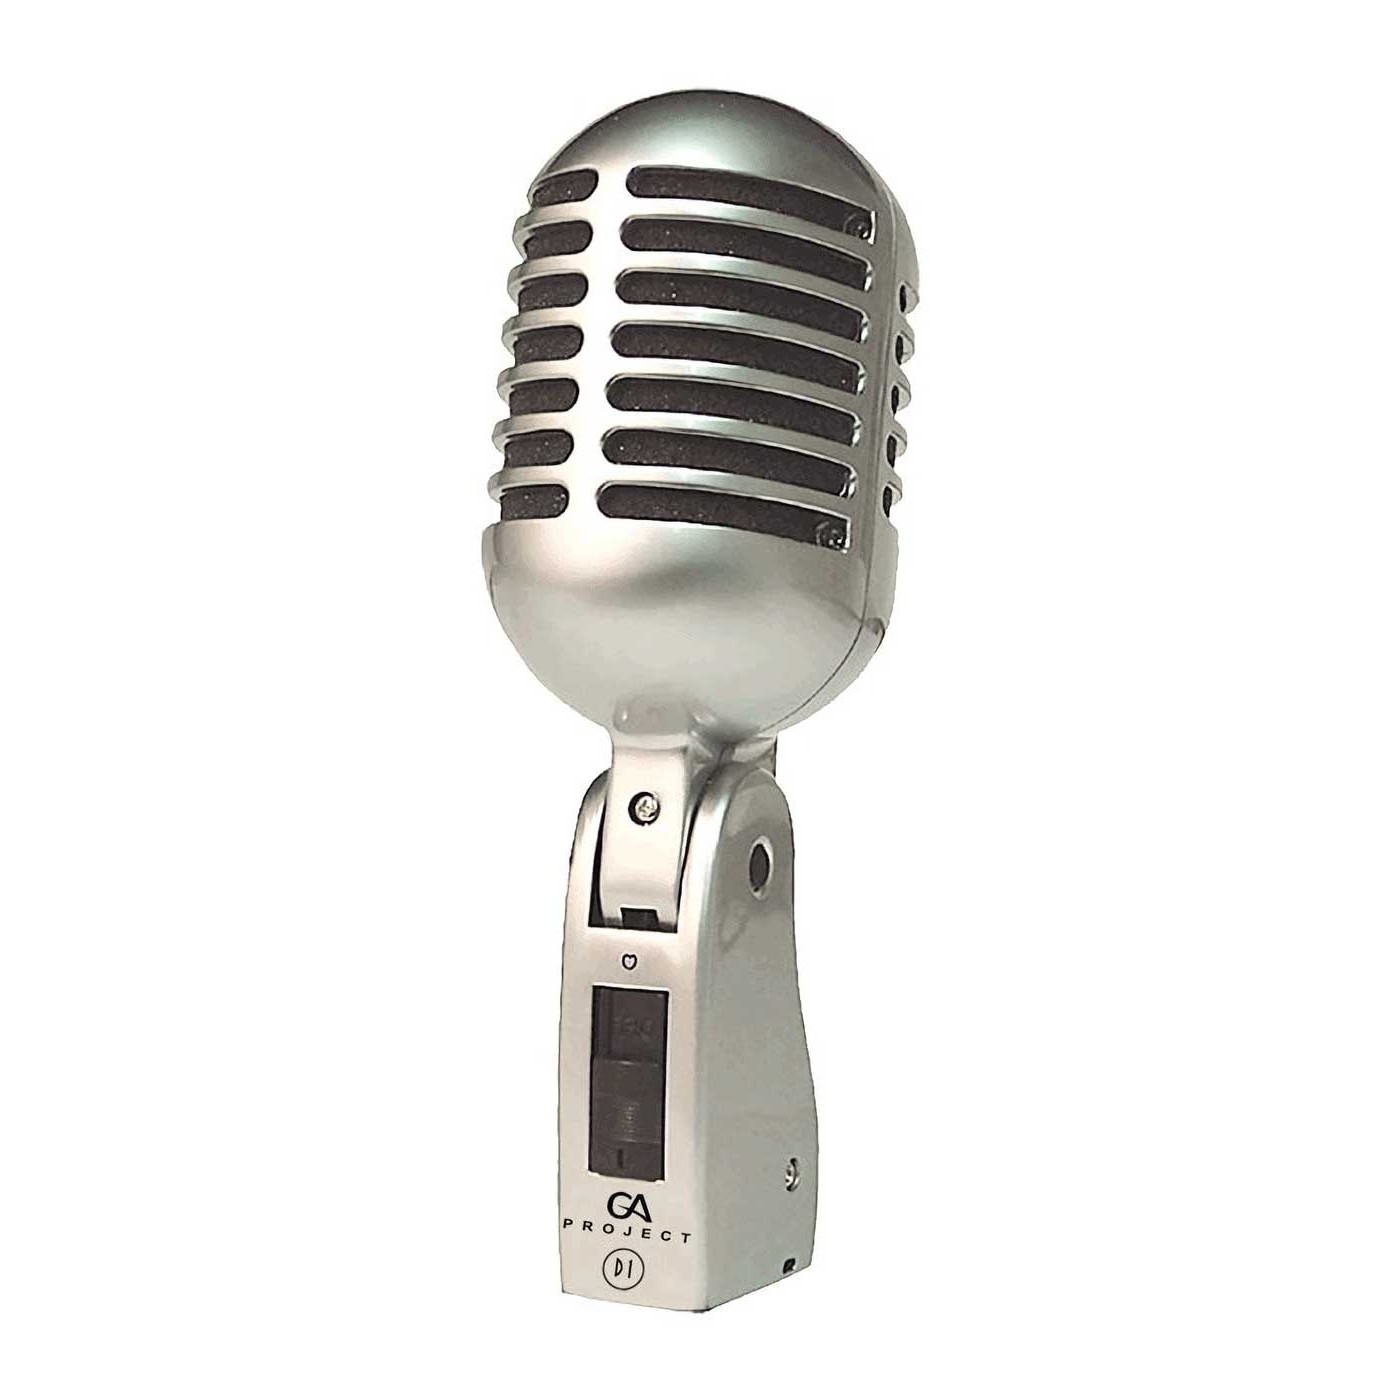 Golden Age Project D1 dynamic microphone